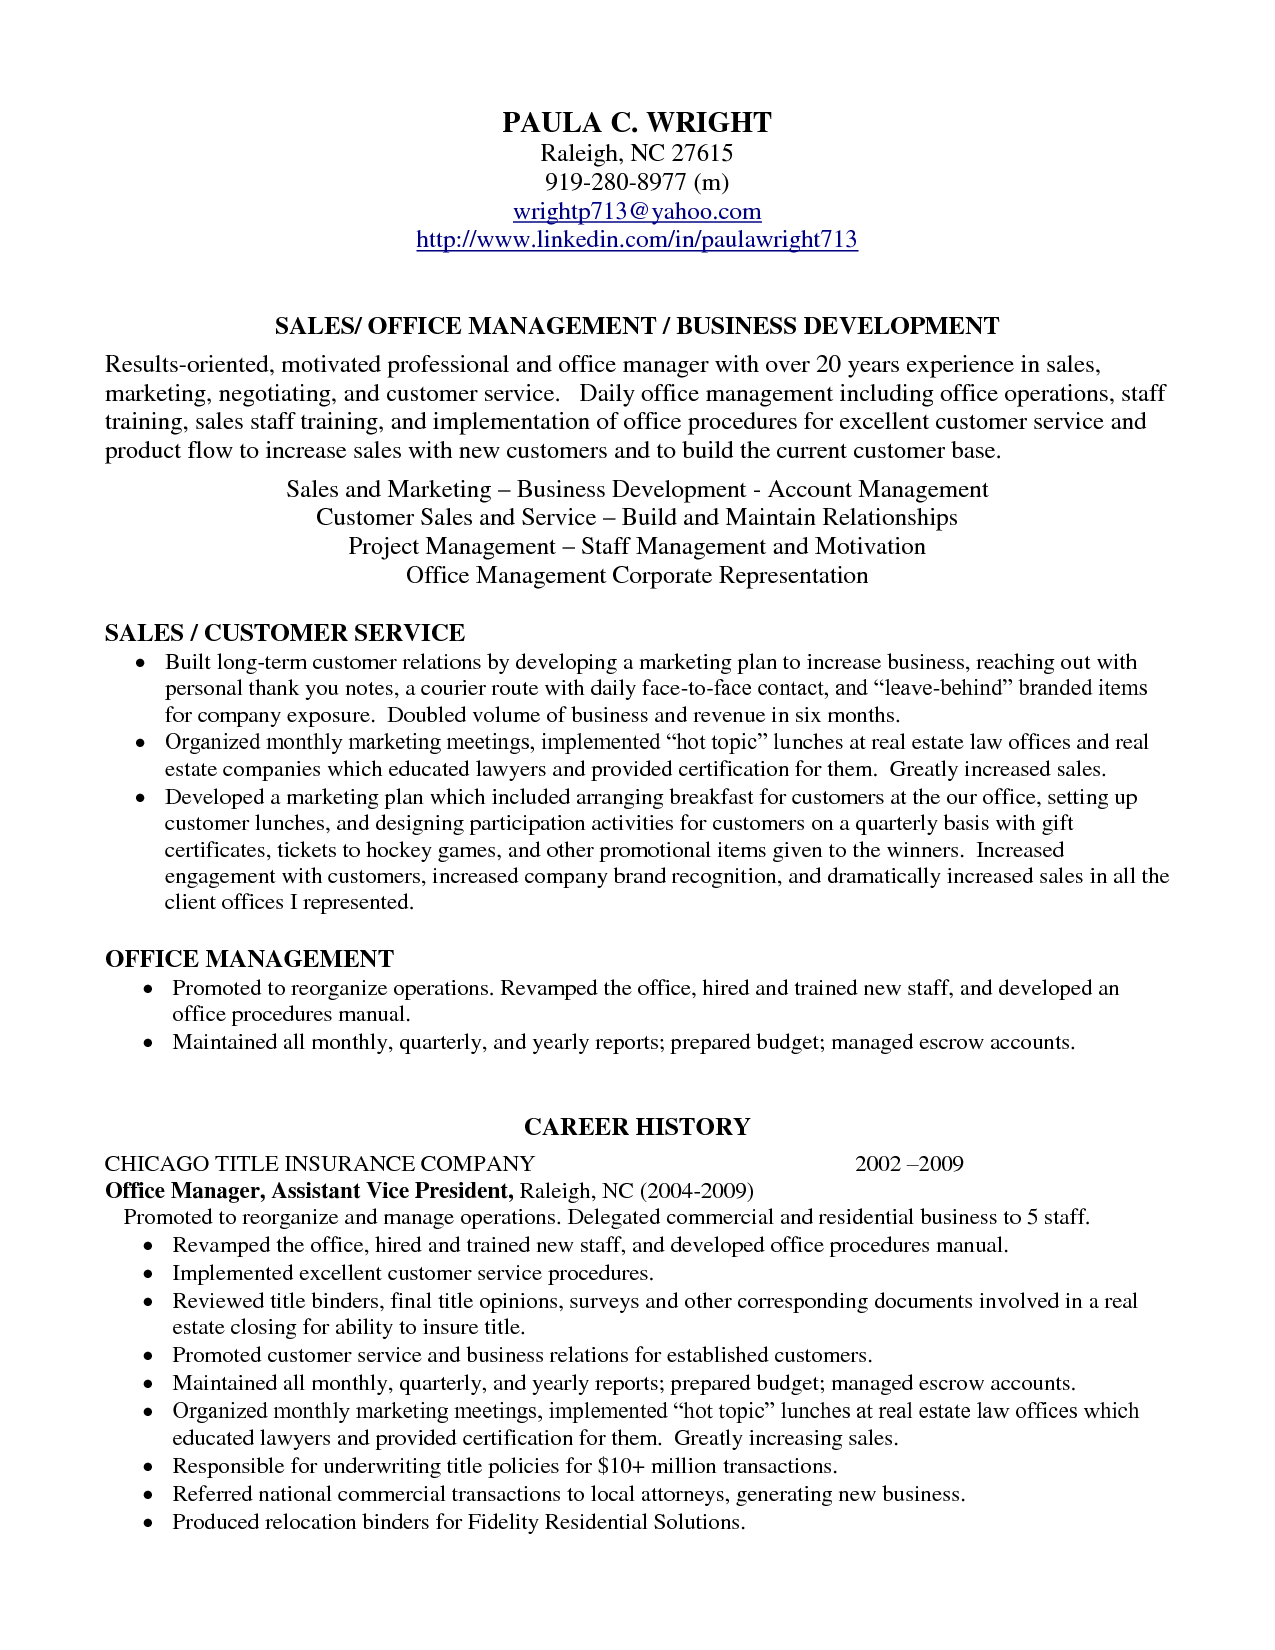 sample professional profile for resume